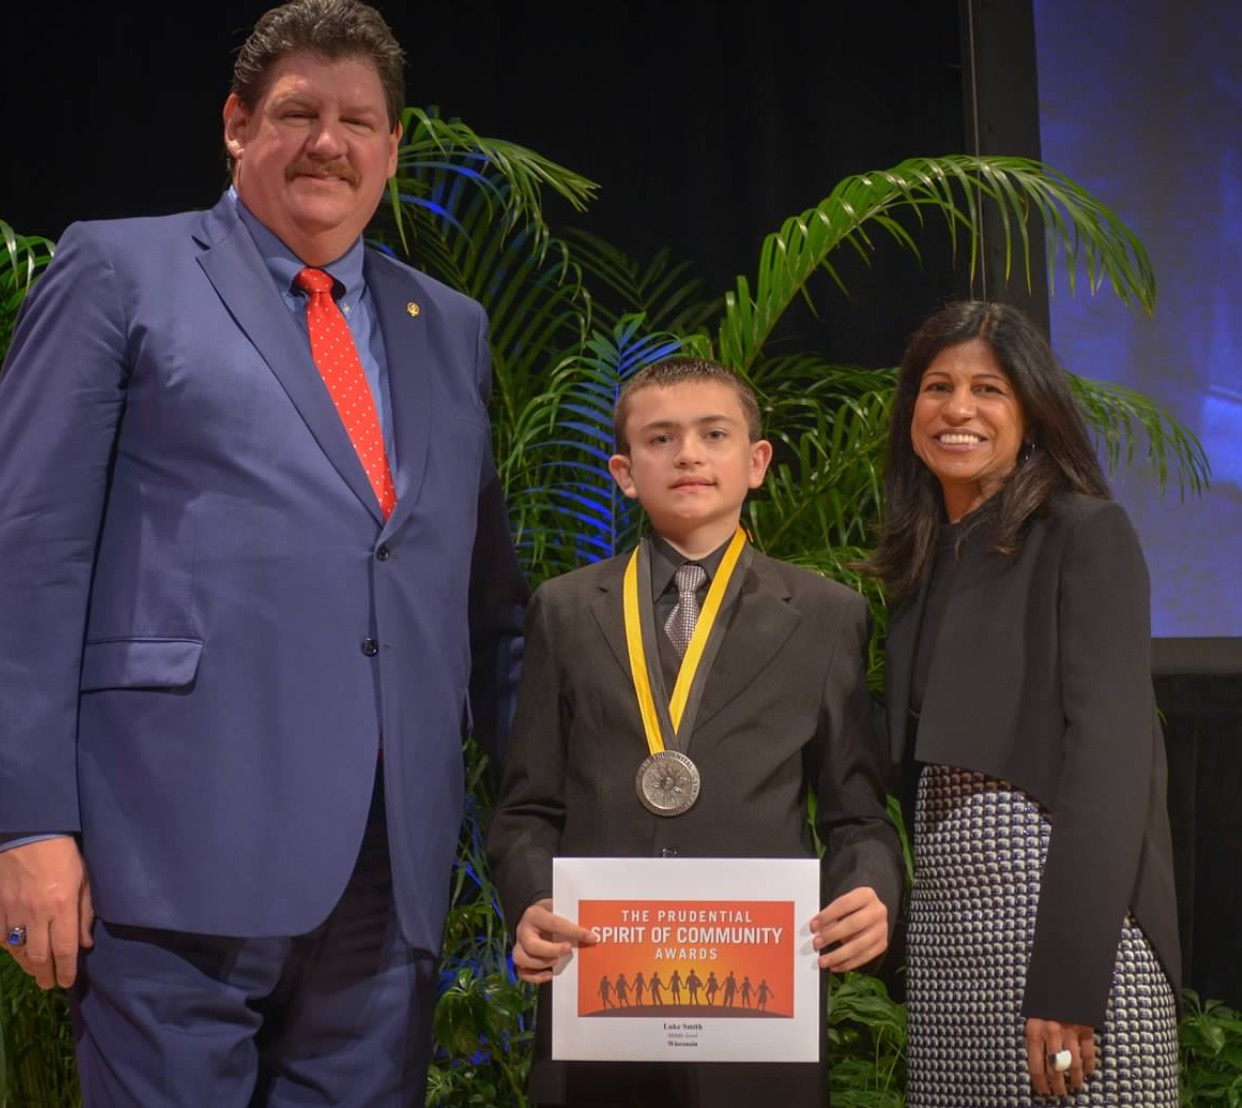 Lucas Smith: Prudential Community of Spirit Award